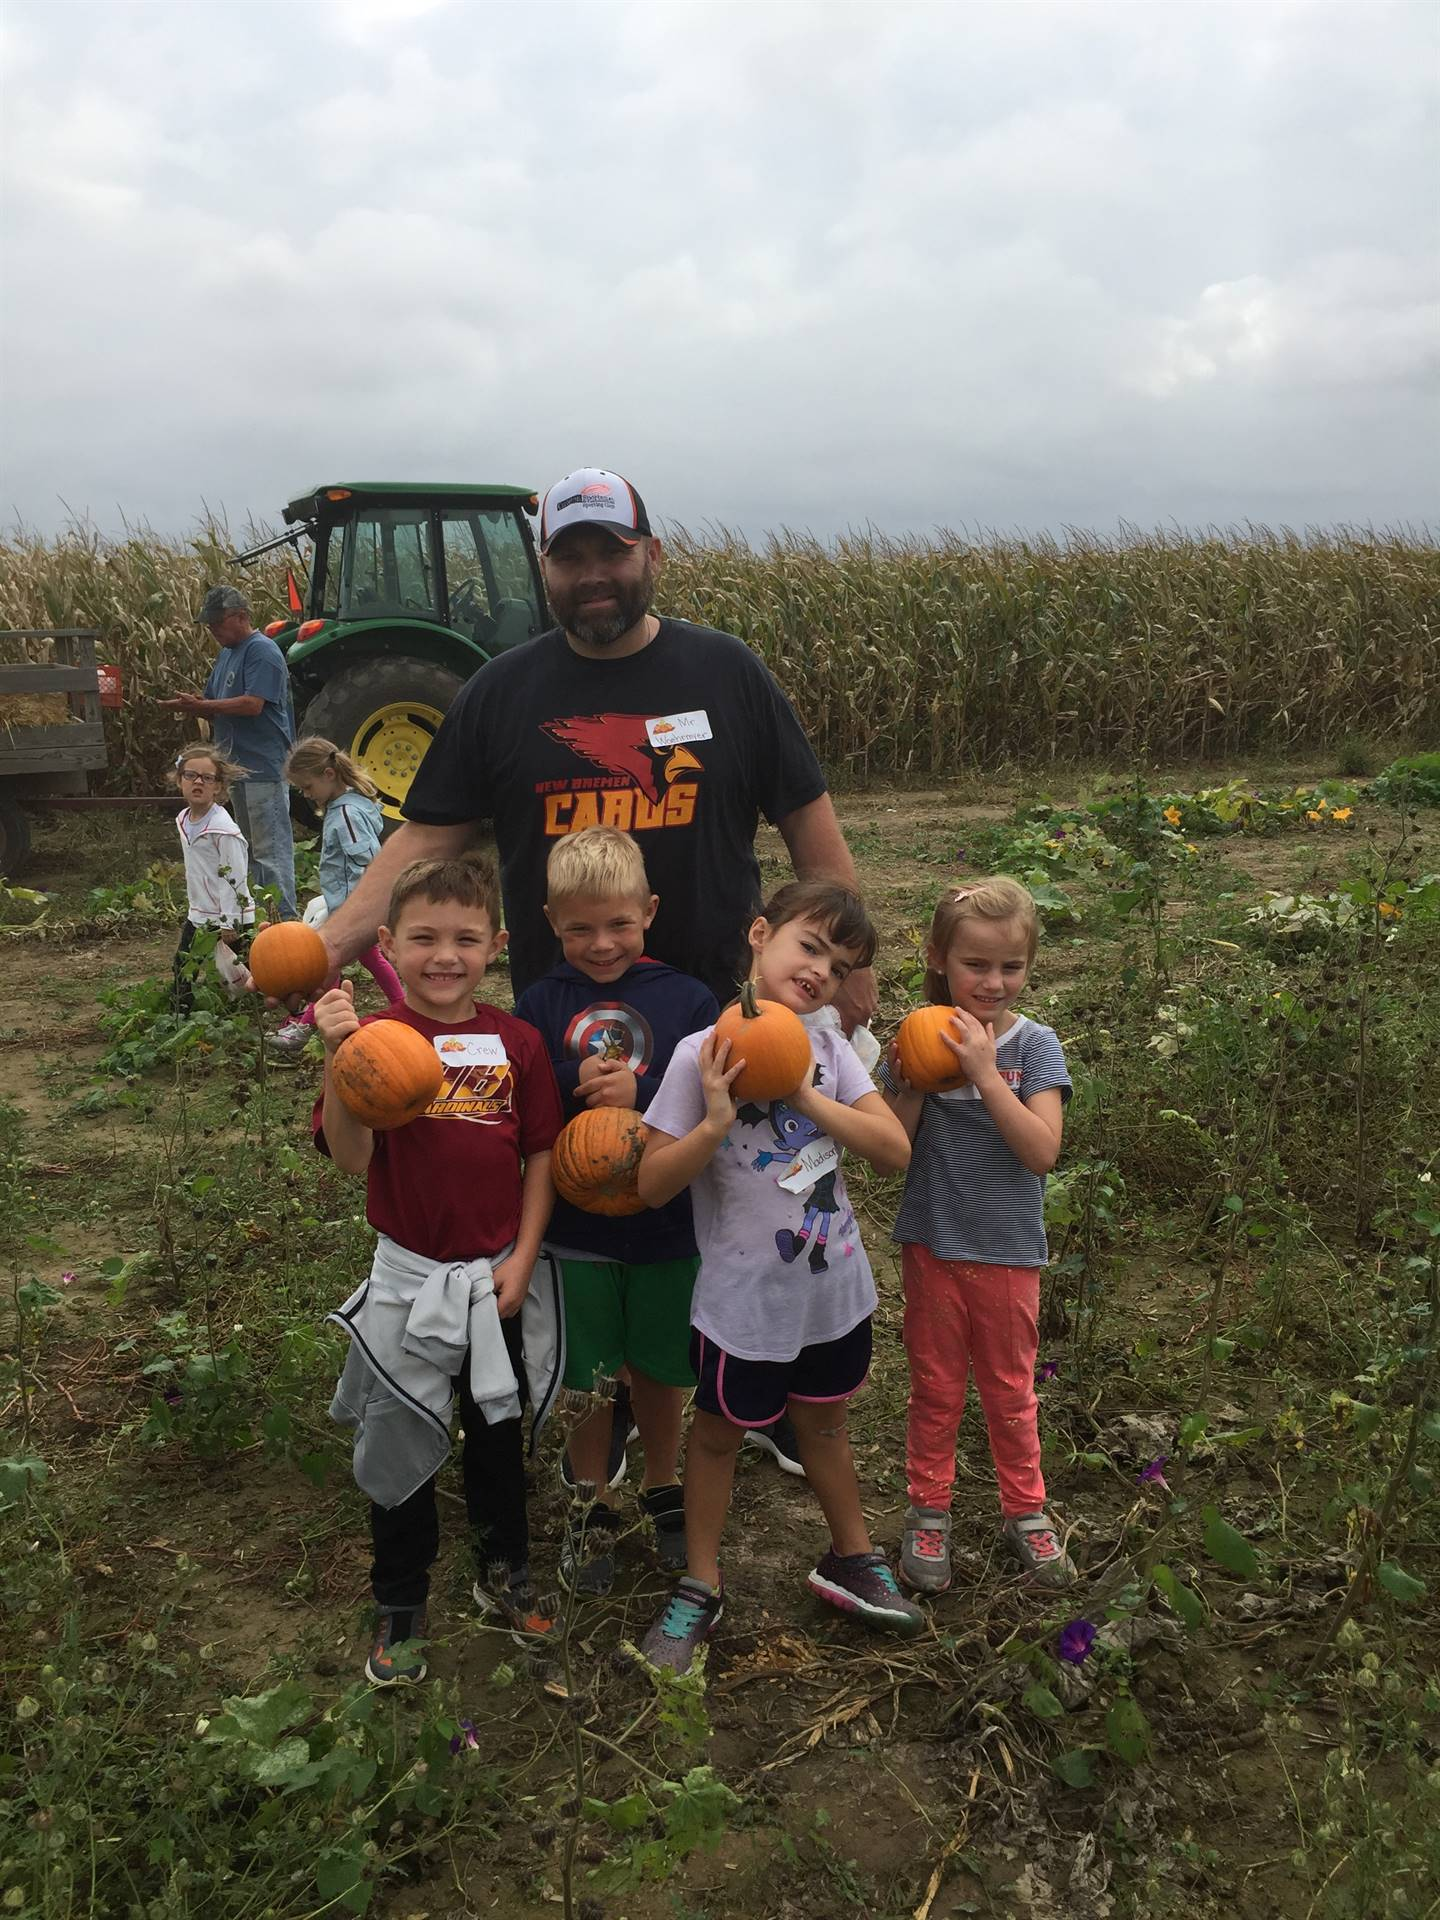 Fun day at Brumbaugh Fruit & Fun Farm!